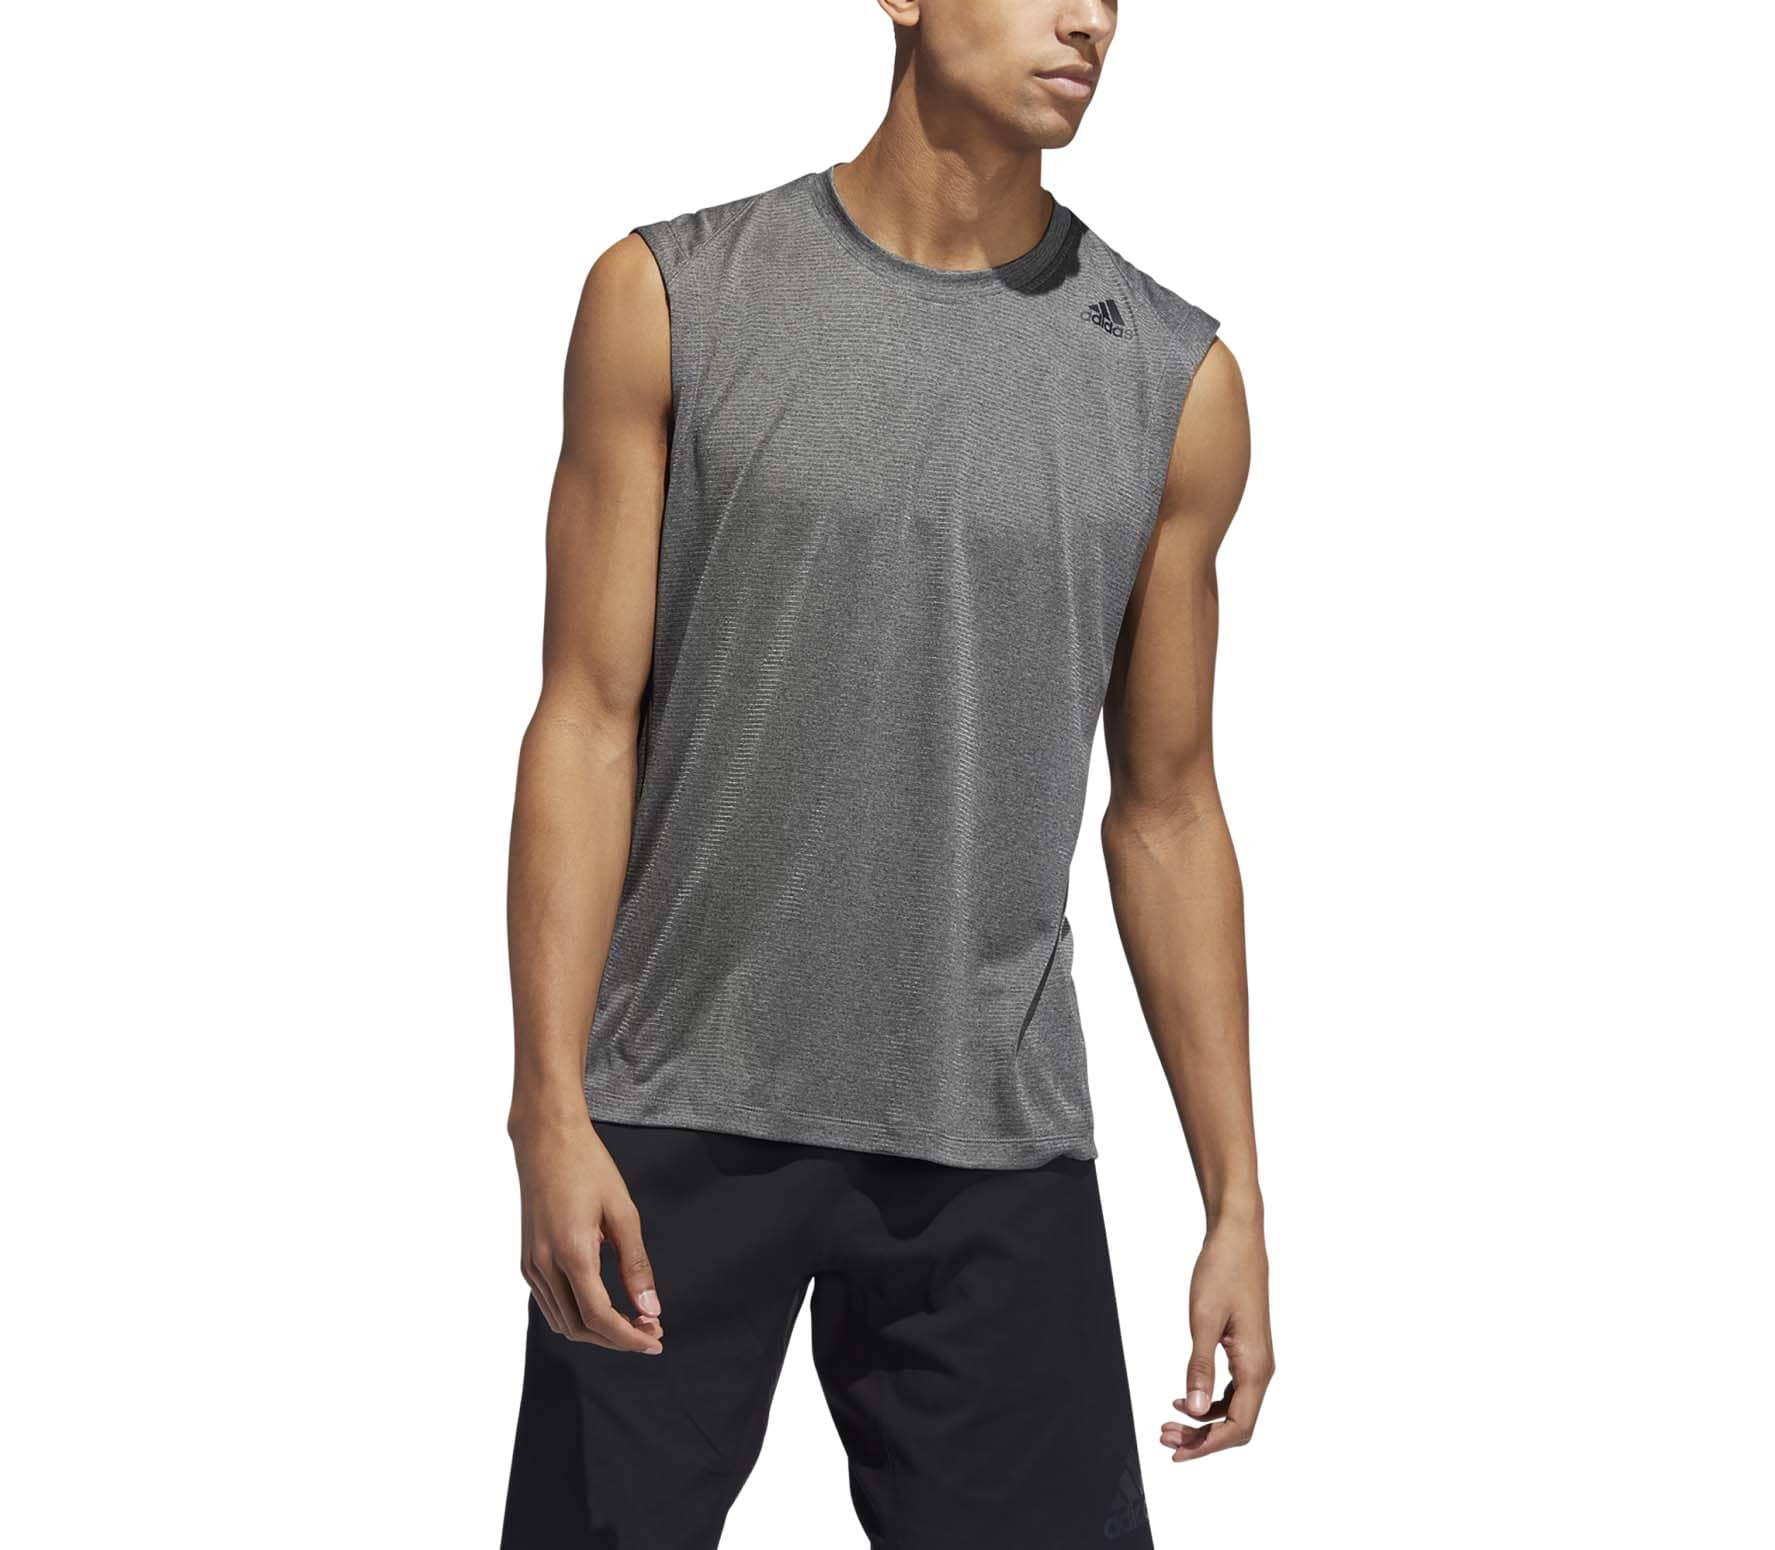 adidas FreeLift Tech Climacool 3-Streifen Men Training Tank Top grey